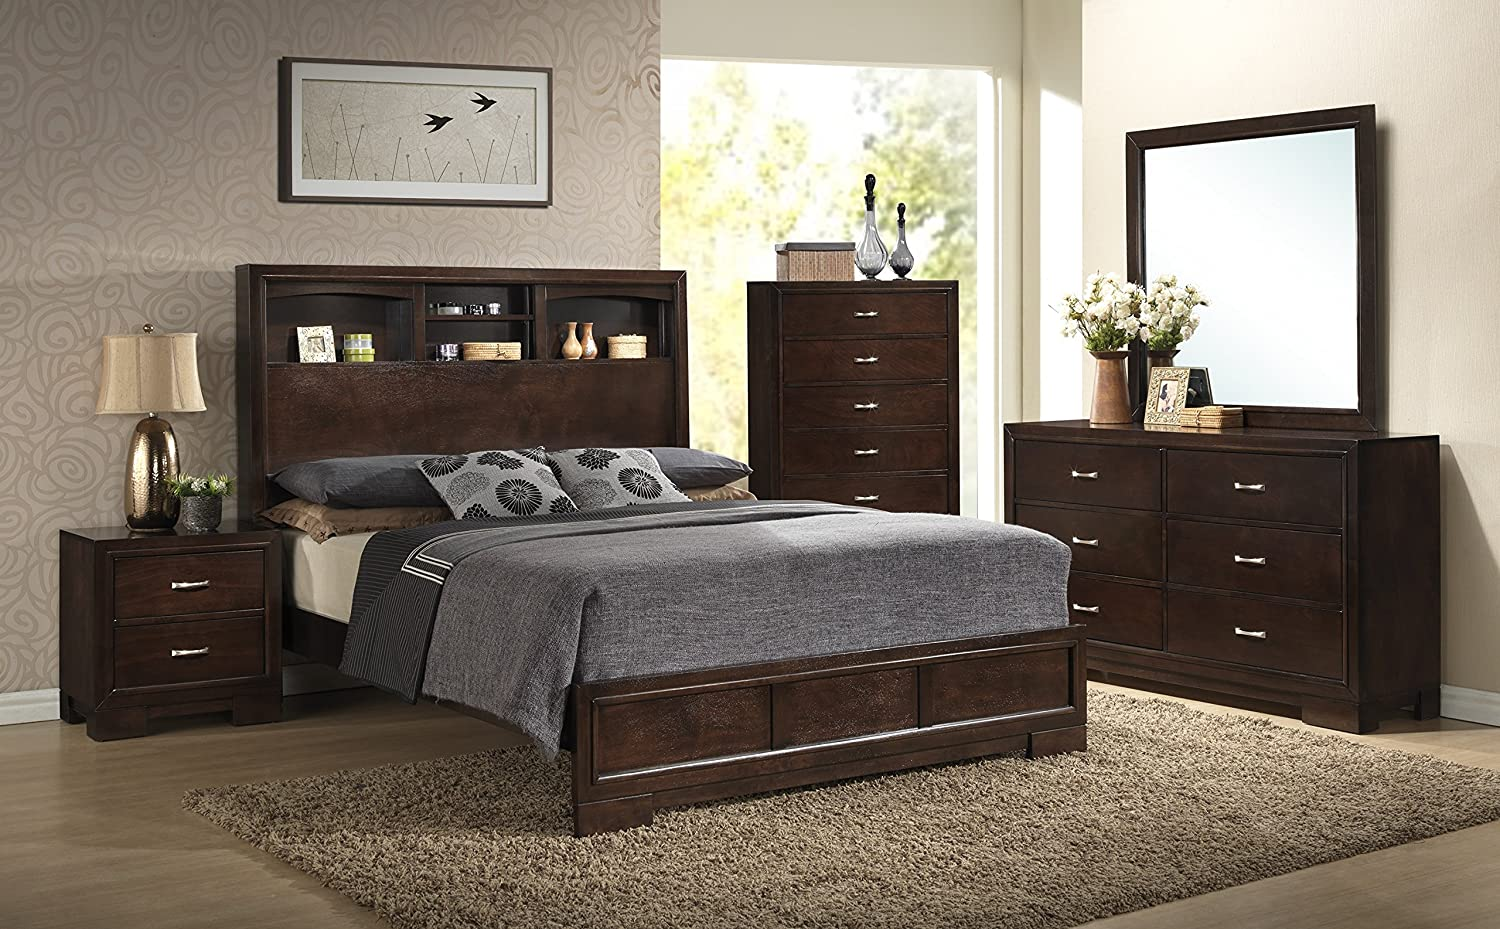 Roundhill Furniture Montana Modern 5-Piece Wood Bedroom Set with Bed - Dresser - Mirror - Nightstand - Chest - Queen